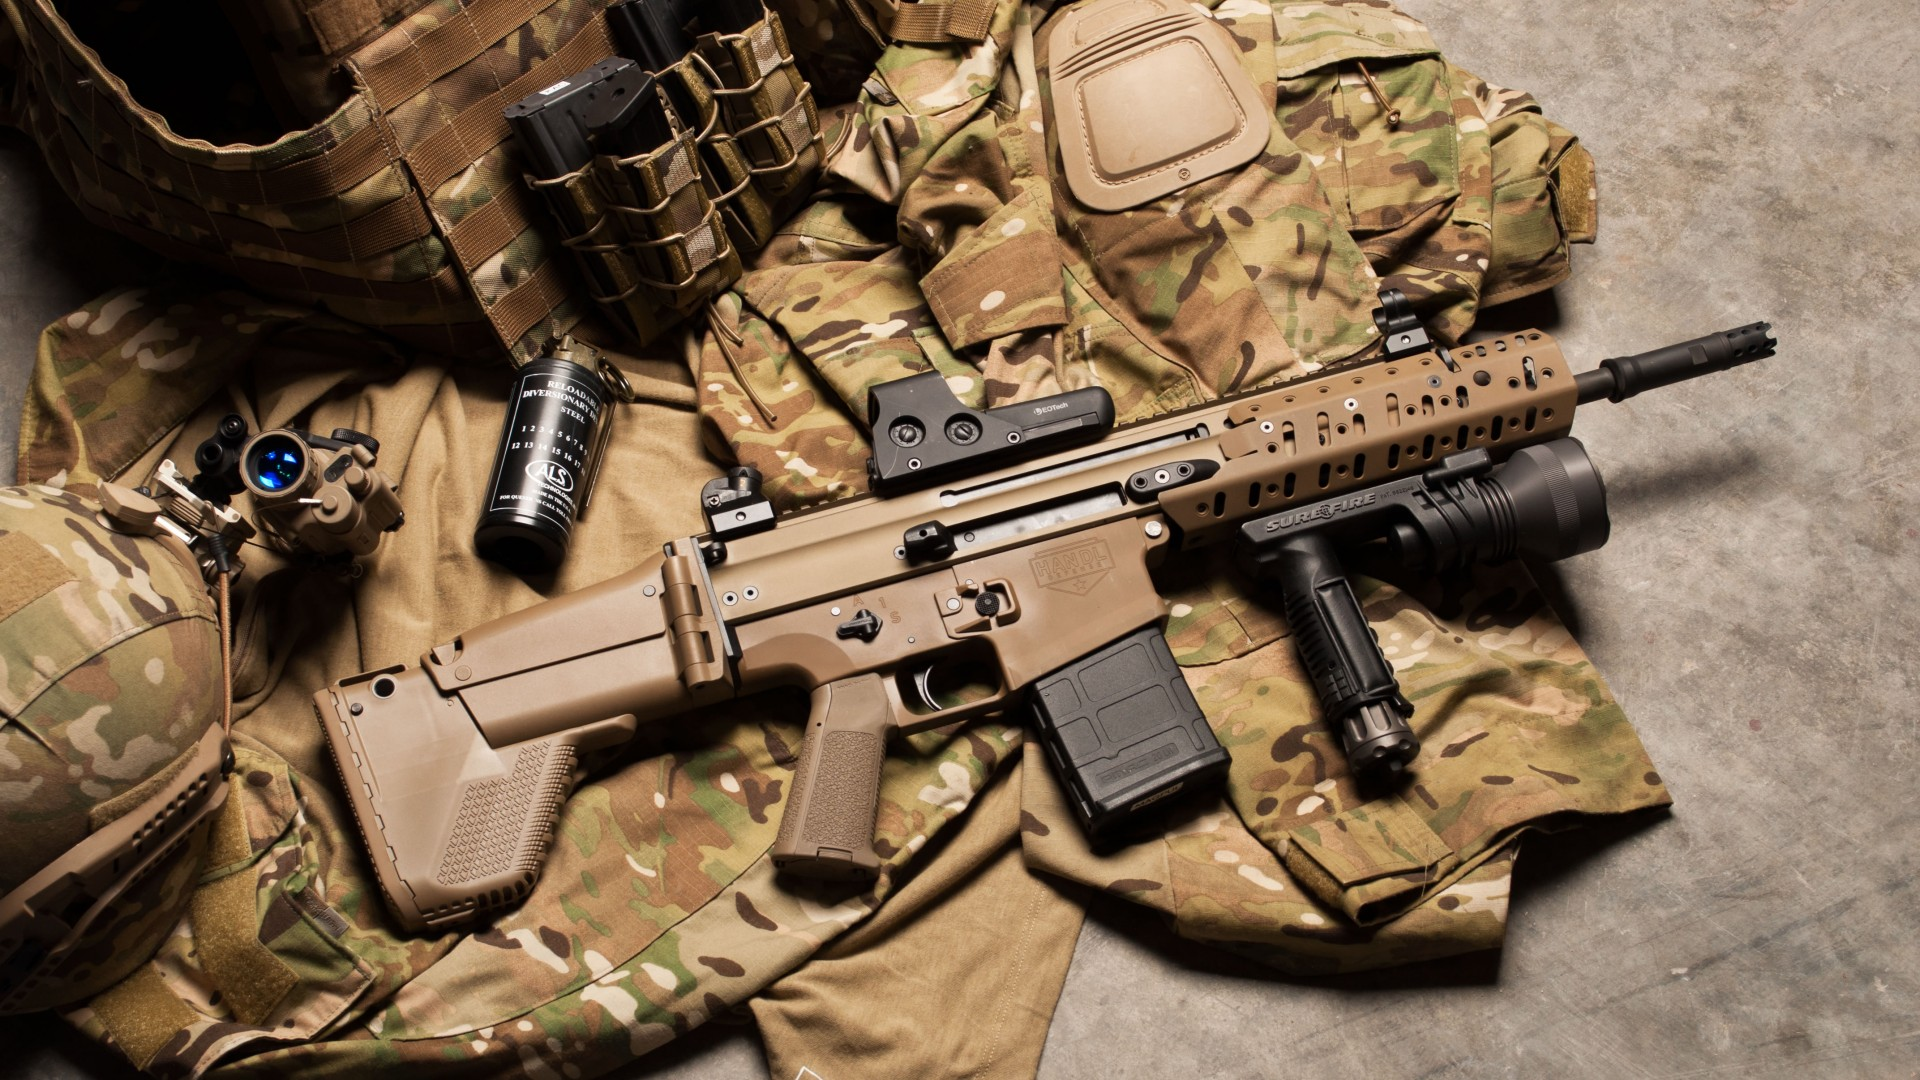 FN SCAR, штурмовая винтовка, аммуниция, униформа, FN SCAR, assault rifle, modular rifle, FN Herstal, hand grenade, military, ammunition, uniform (horizontal)